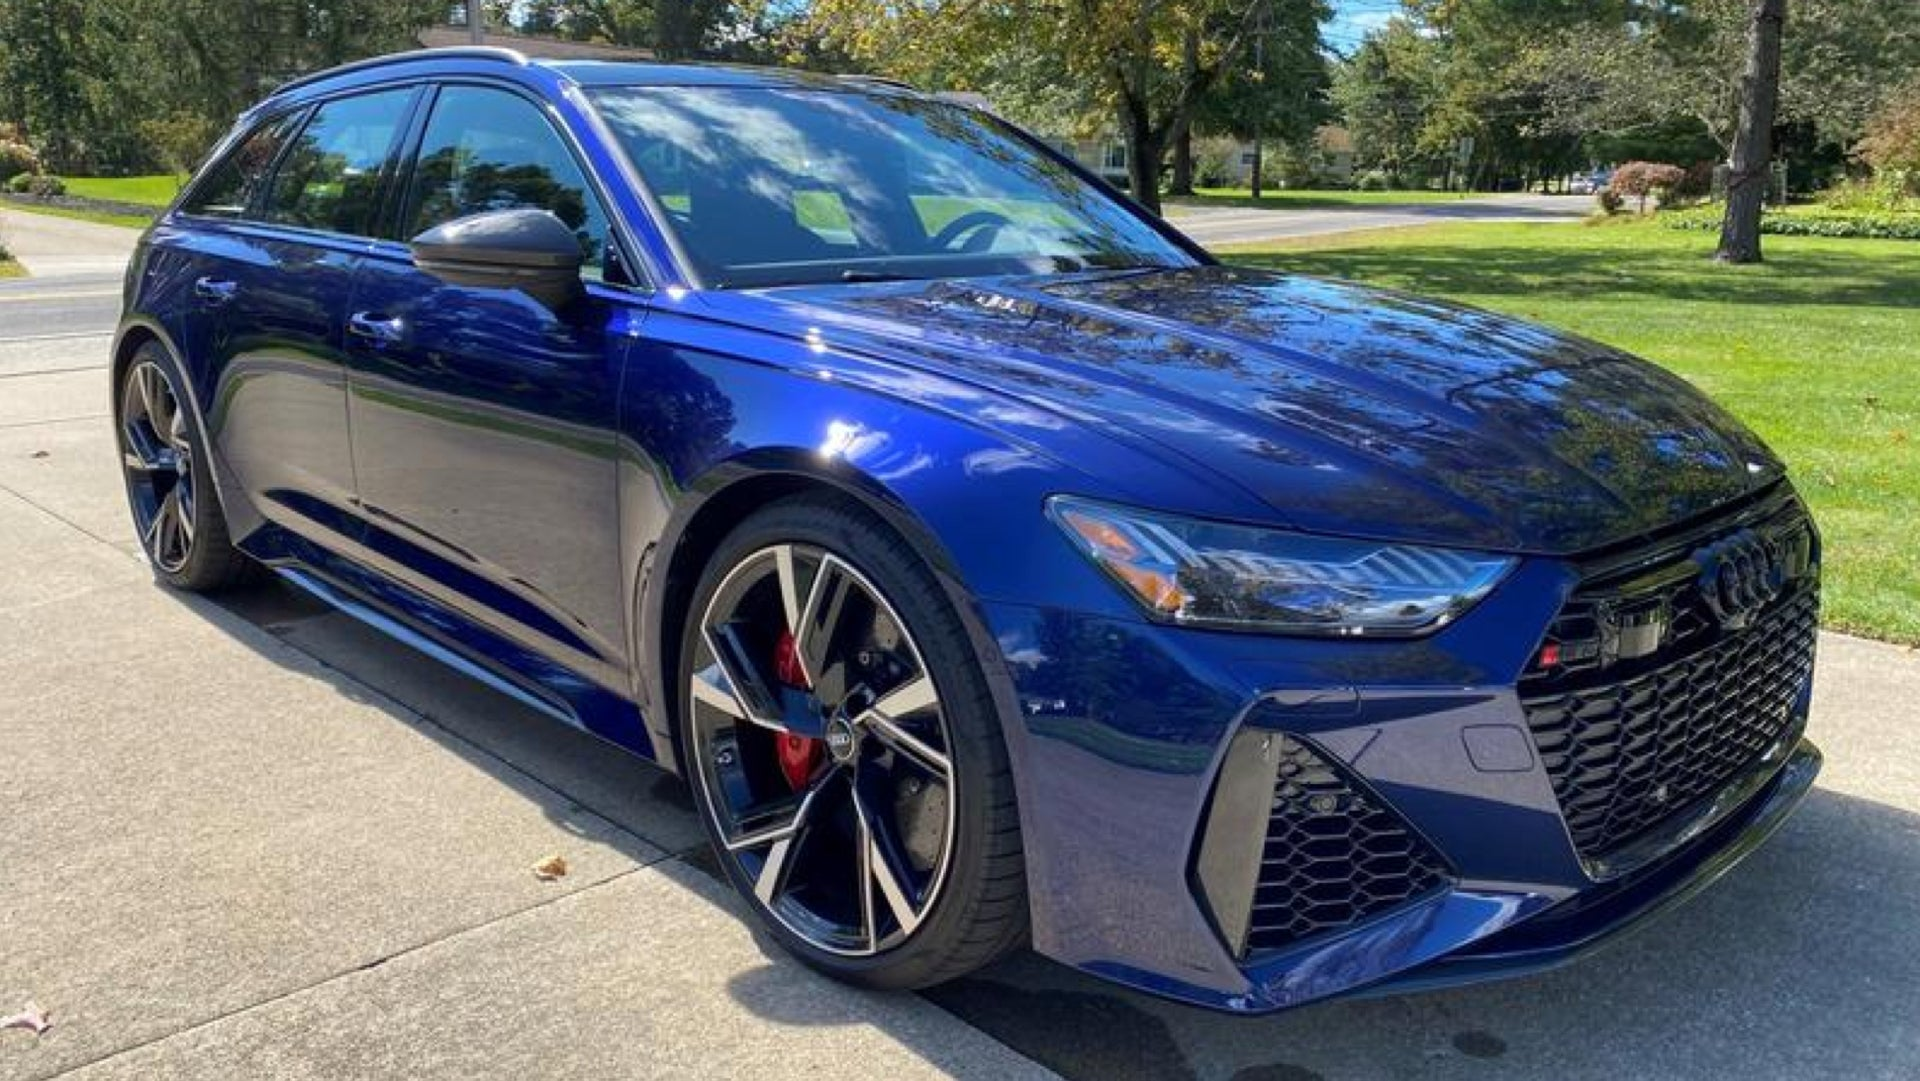 2021 Audi RS6 Avant Listed for Nearly Double the MSRP ...